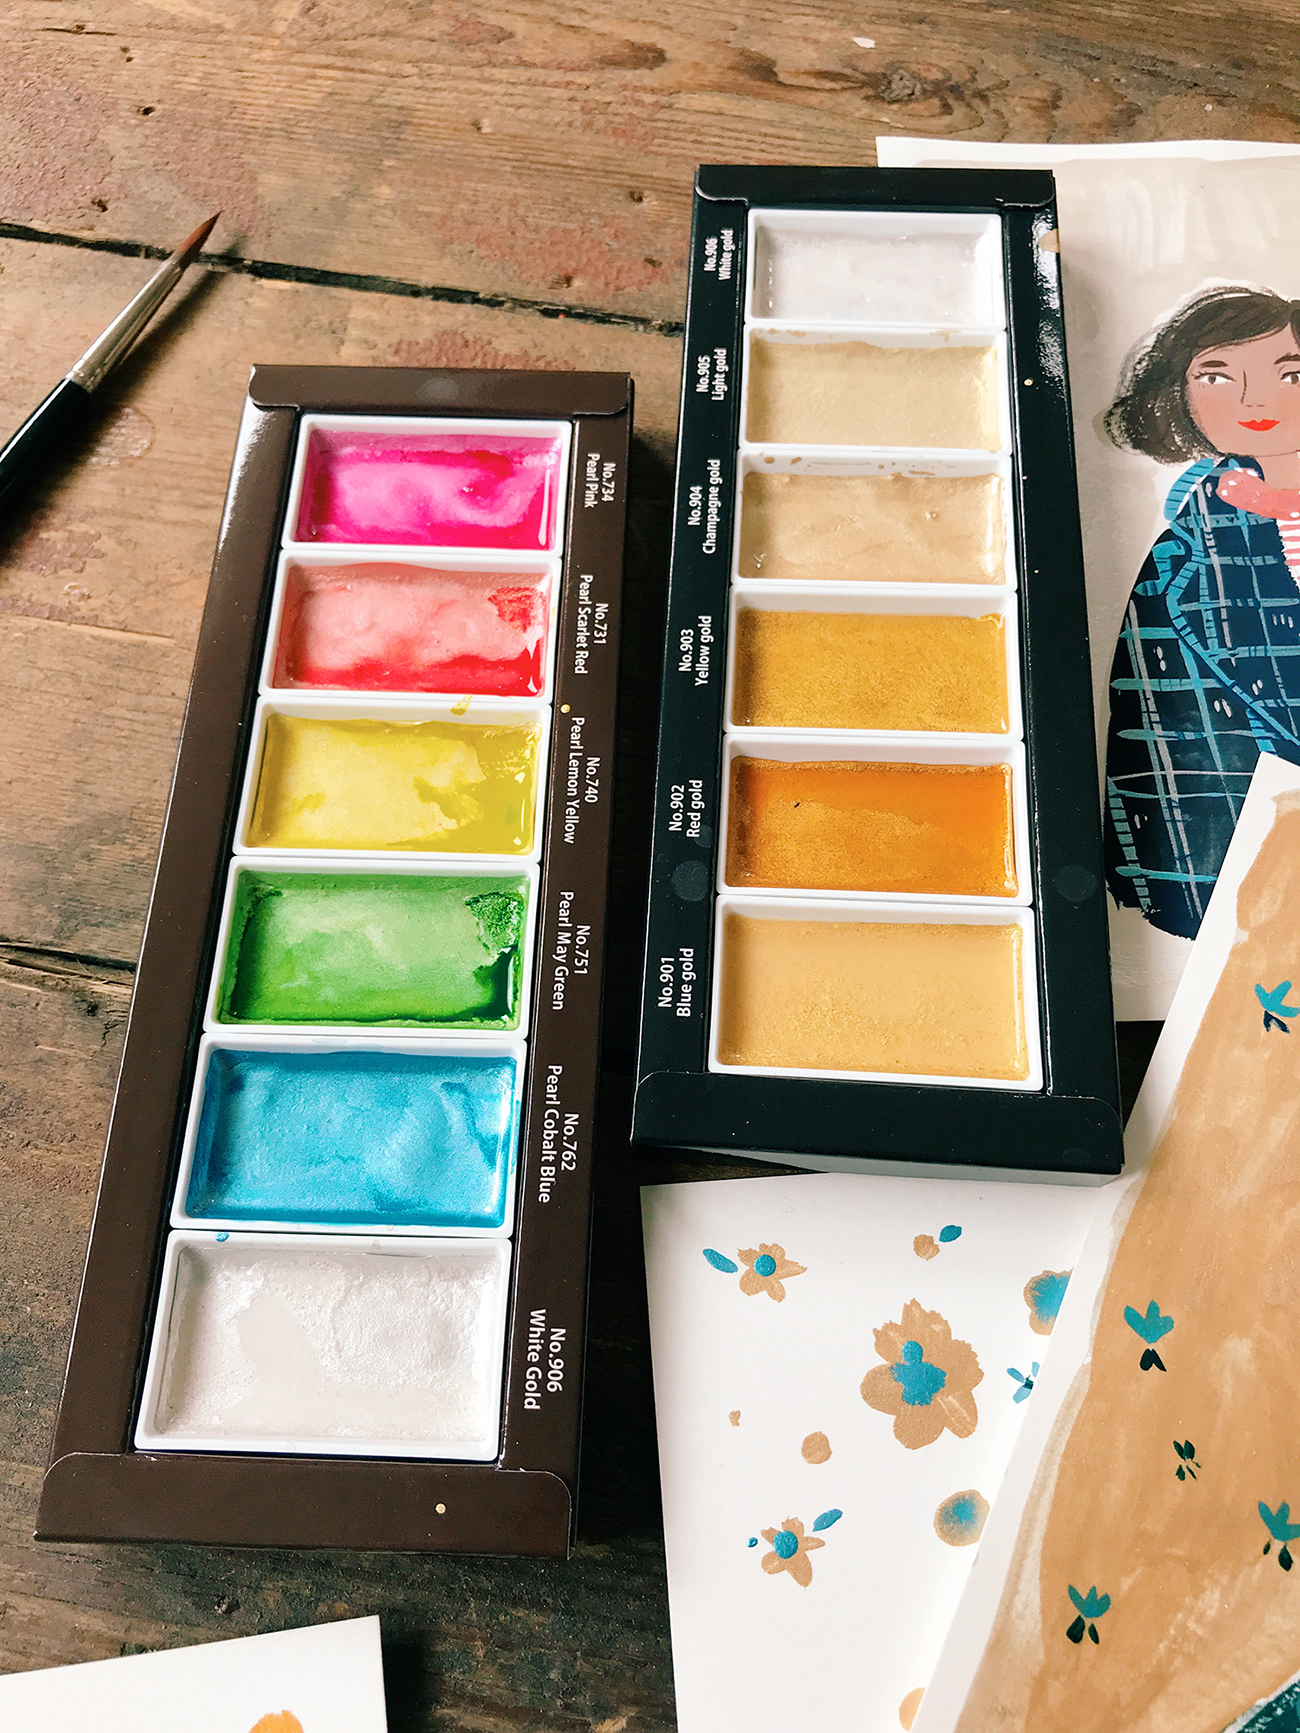 "<a href=""https://www.jacksonsart.com/kuretake-gansai-tambi-japanese-watercolour-starry-colours-set-of-6?utm_source=jasblog&amp;utm_medium=blog-post&amp;utm_campaign=VS_Kuretake_Shiney"" target=""_blank"" rel=""noopener"">Kuretake Gansai Tambi Japenese Watercolour Starry Colour set</a> and <a href=""https://www.jacksonsart.com/kuretake-gansai-tambi-japanese-watercolour-pearl-colours-set-of-6?utm_source=jasblog&amp;utm_medium=blog-post&amp;utm_campaign=VS_Kuretake_Shiney"" target=""_blank"" rel=""noopener"">Kuretake Gansai Tambi Pearl Colour set</a> by <a href=""http://www.andsmilestudio.com/"" target=""_blank"" rel=""noopener"">Viktorija Semjonova</a>"